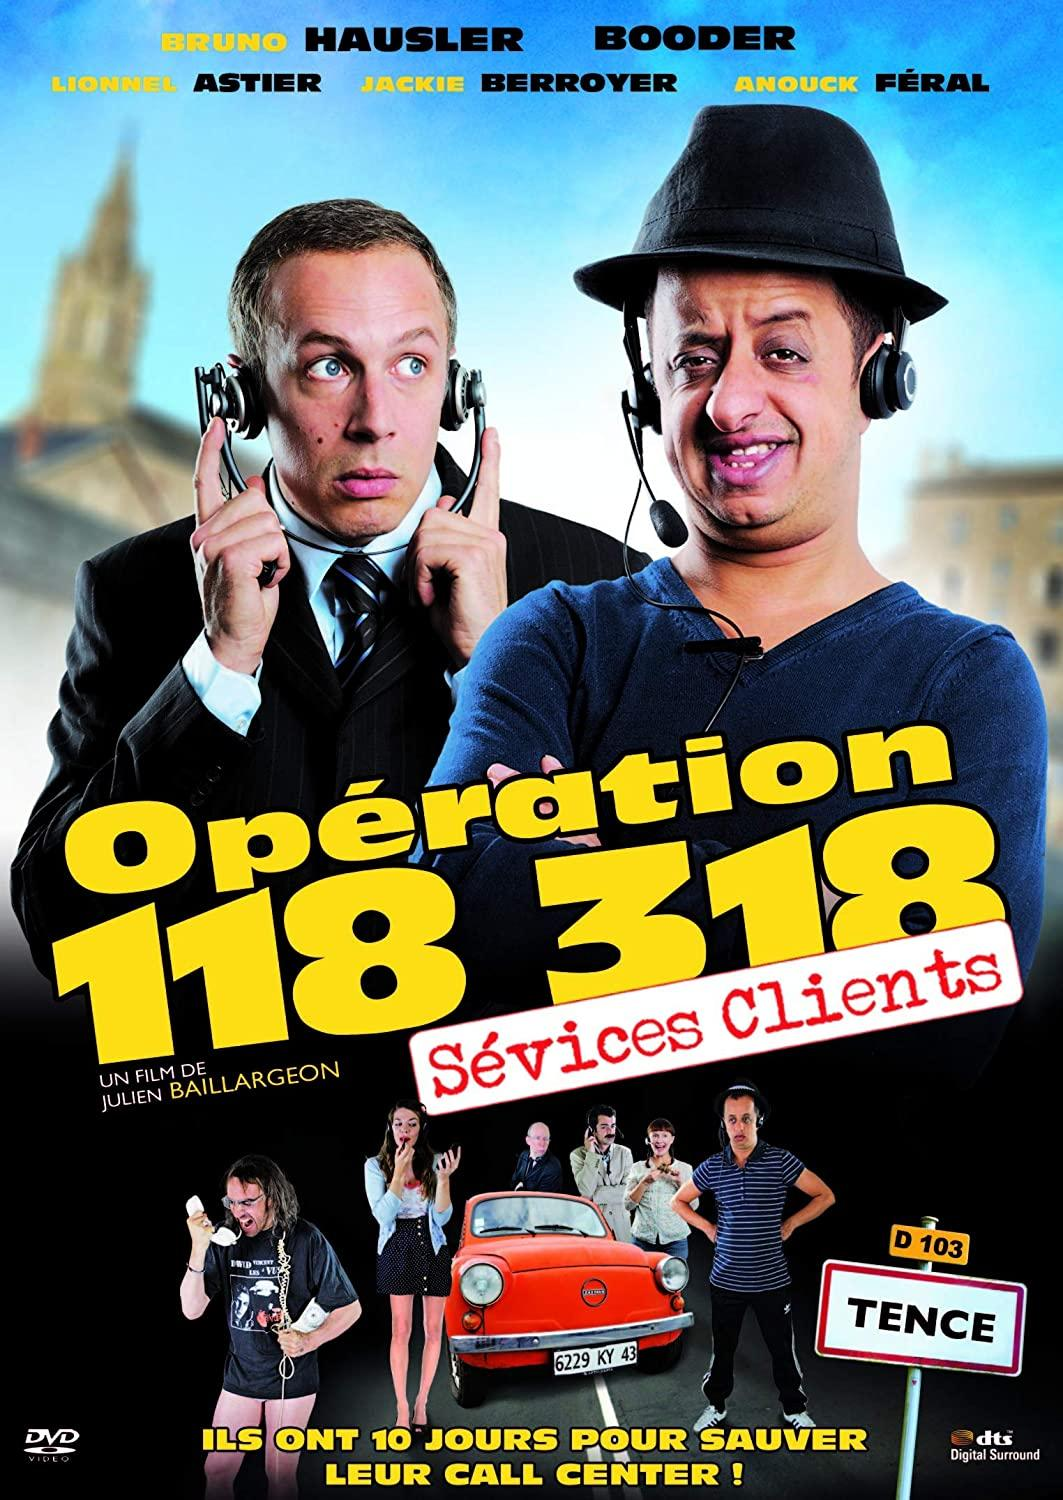 Operation 118 318 sevices clients